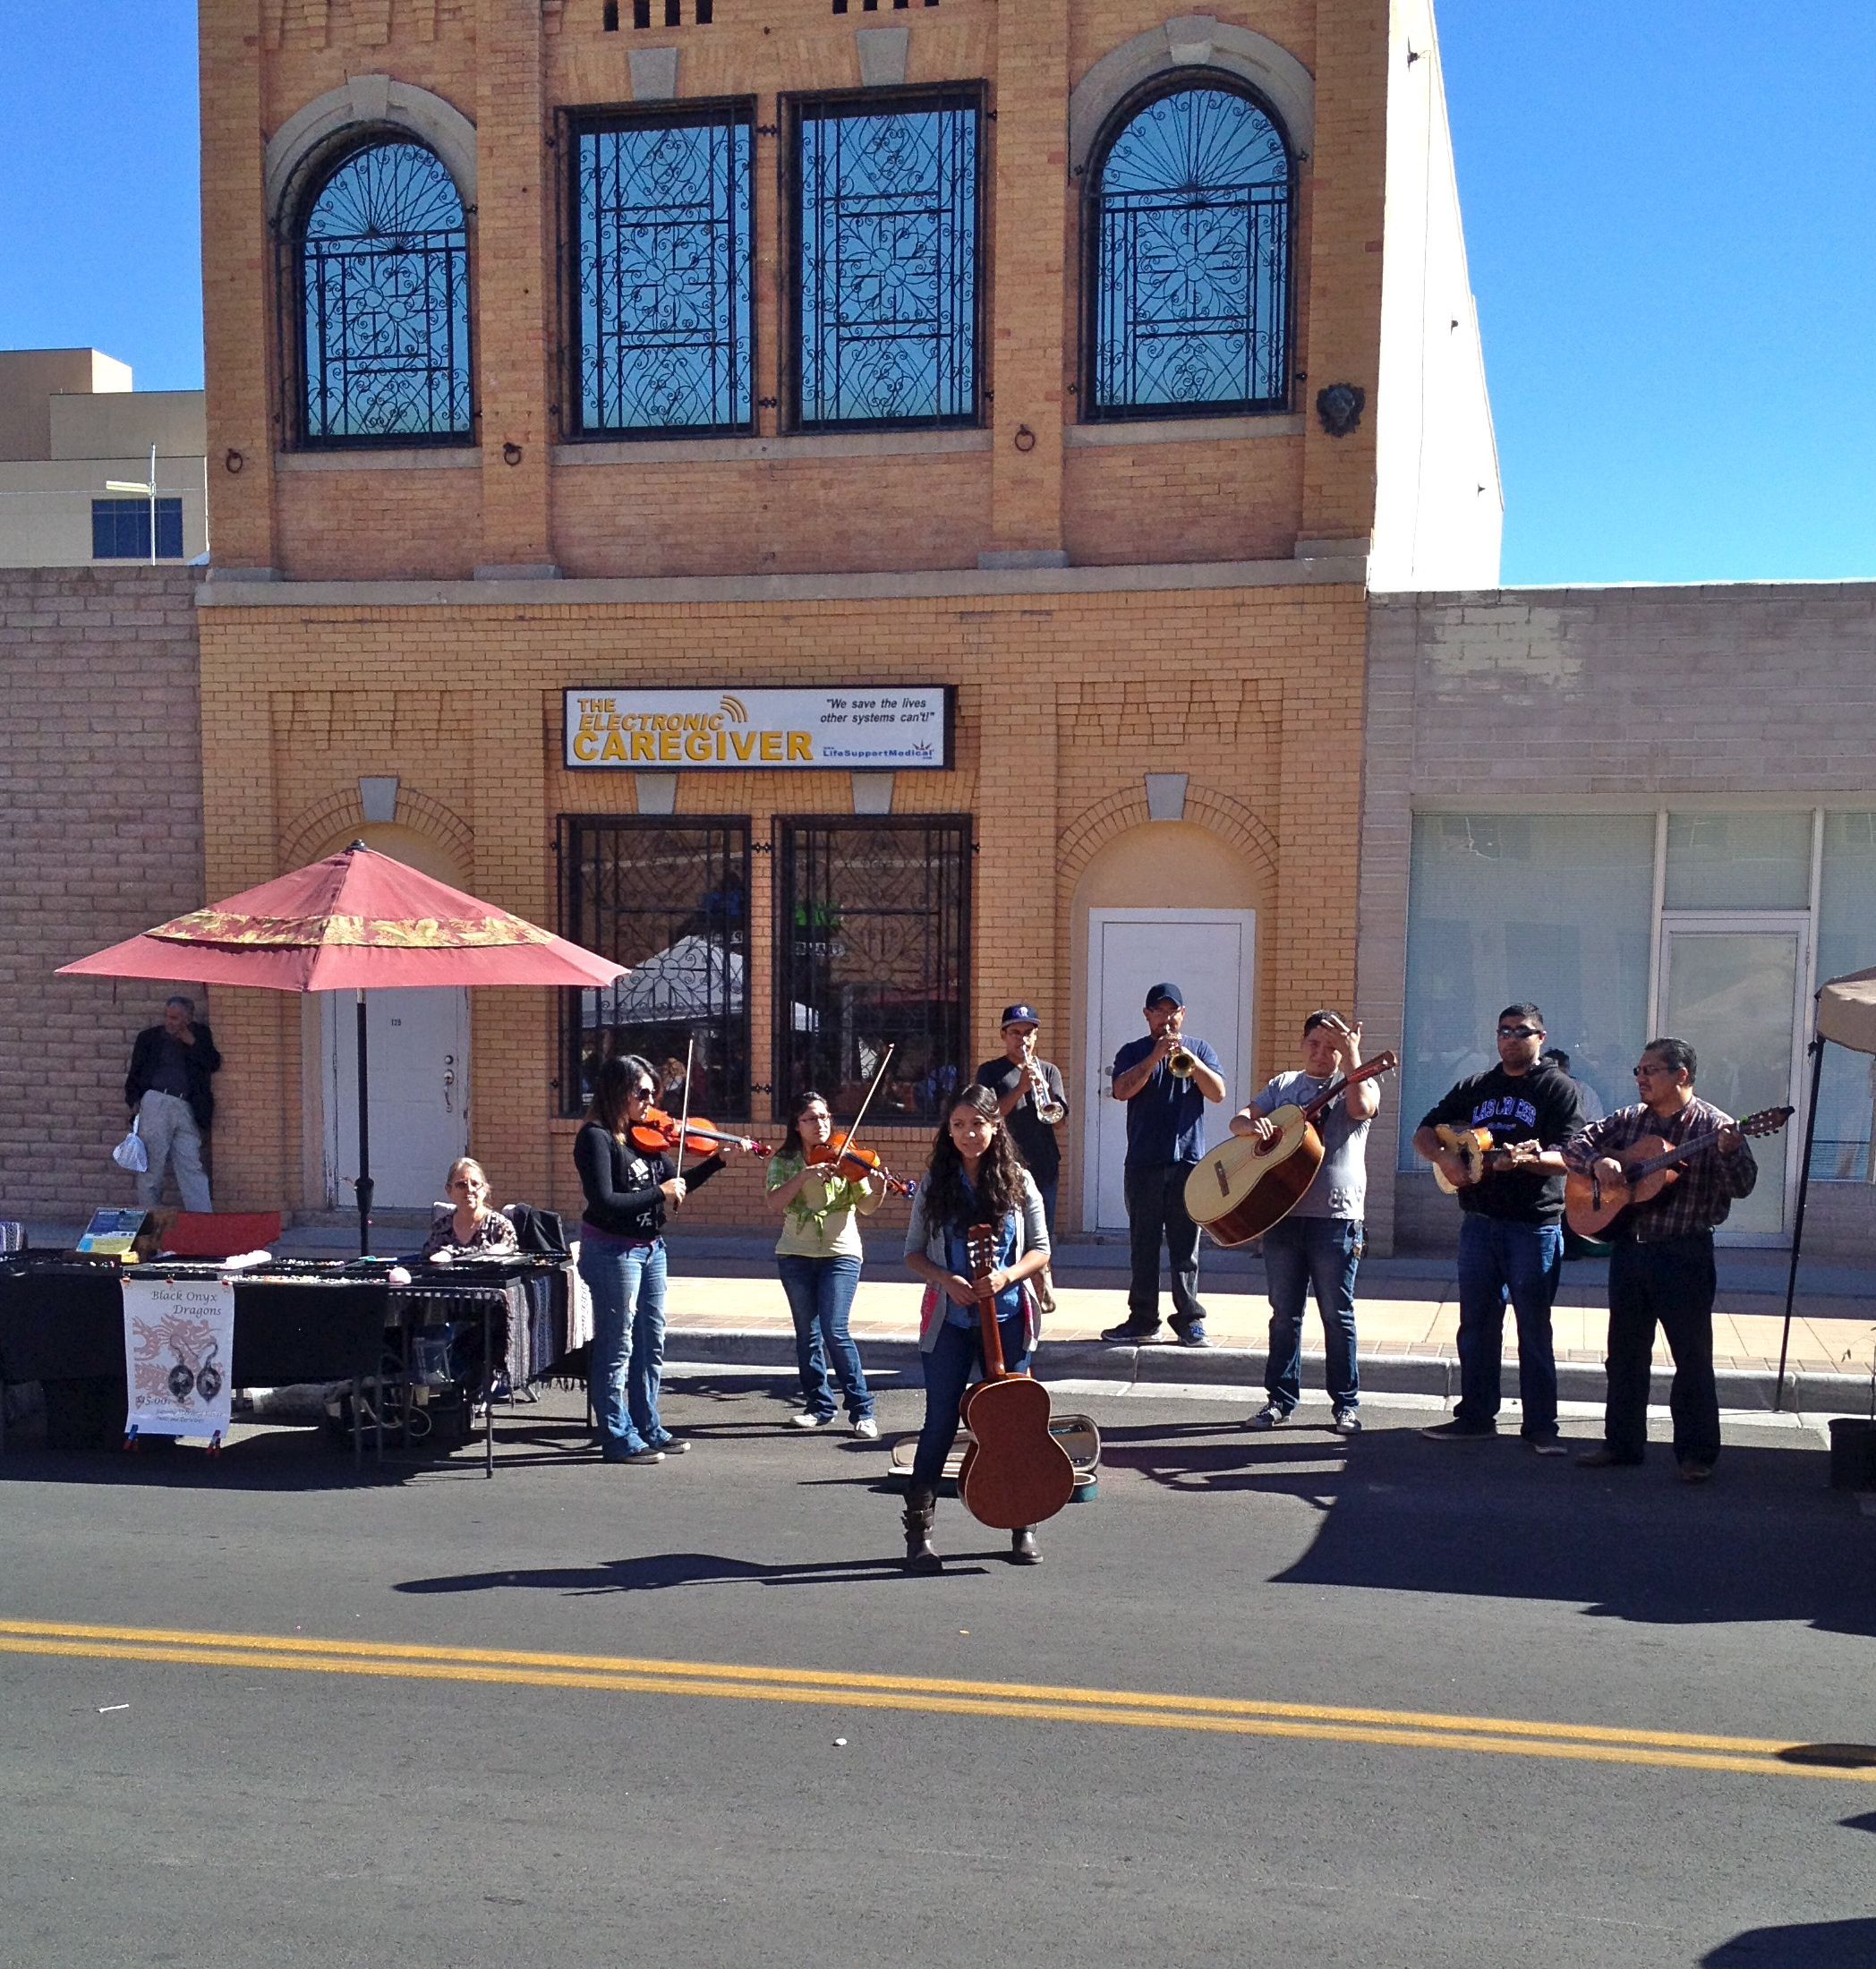 A Day At The Las Cruces Farmers Market